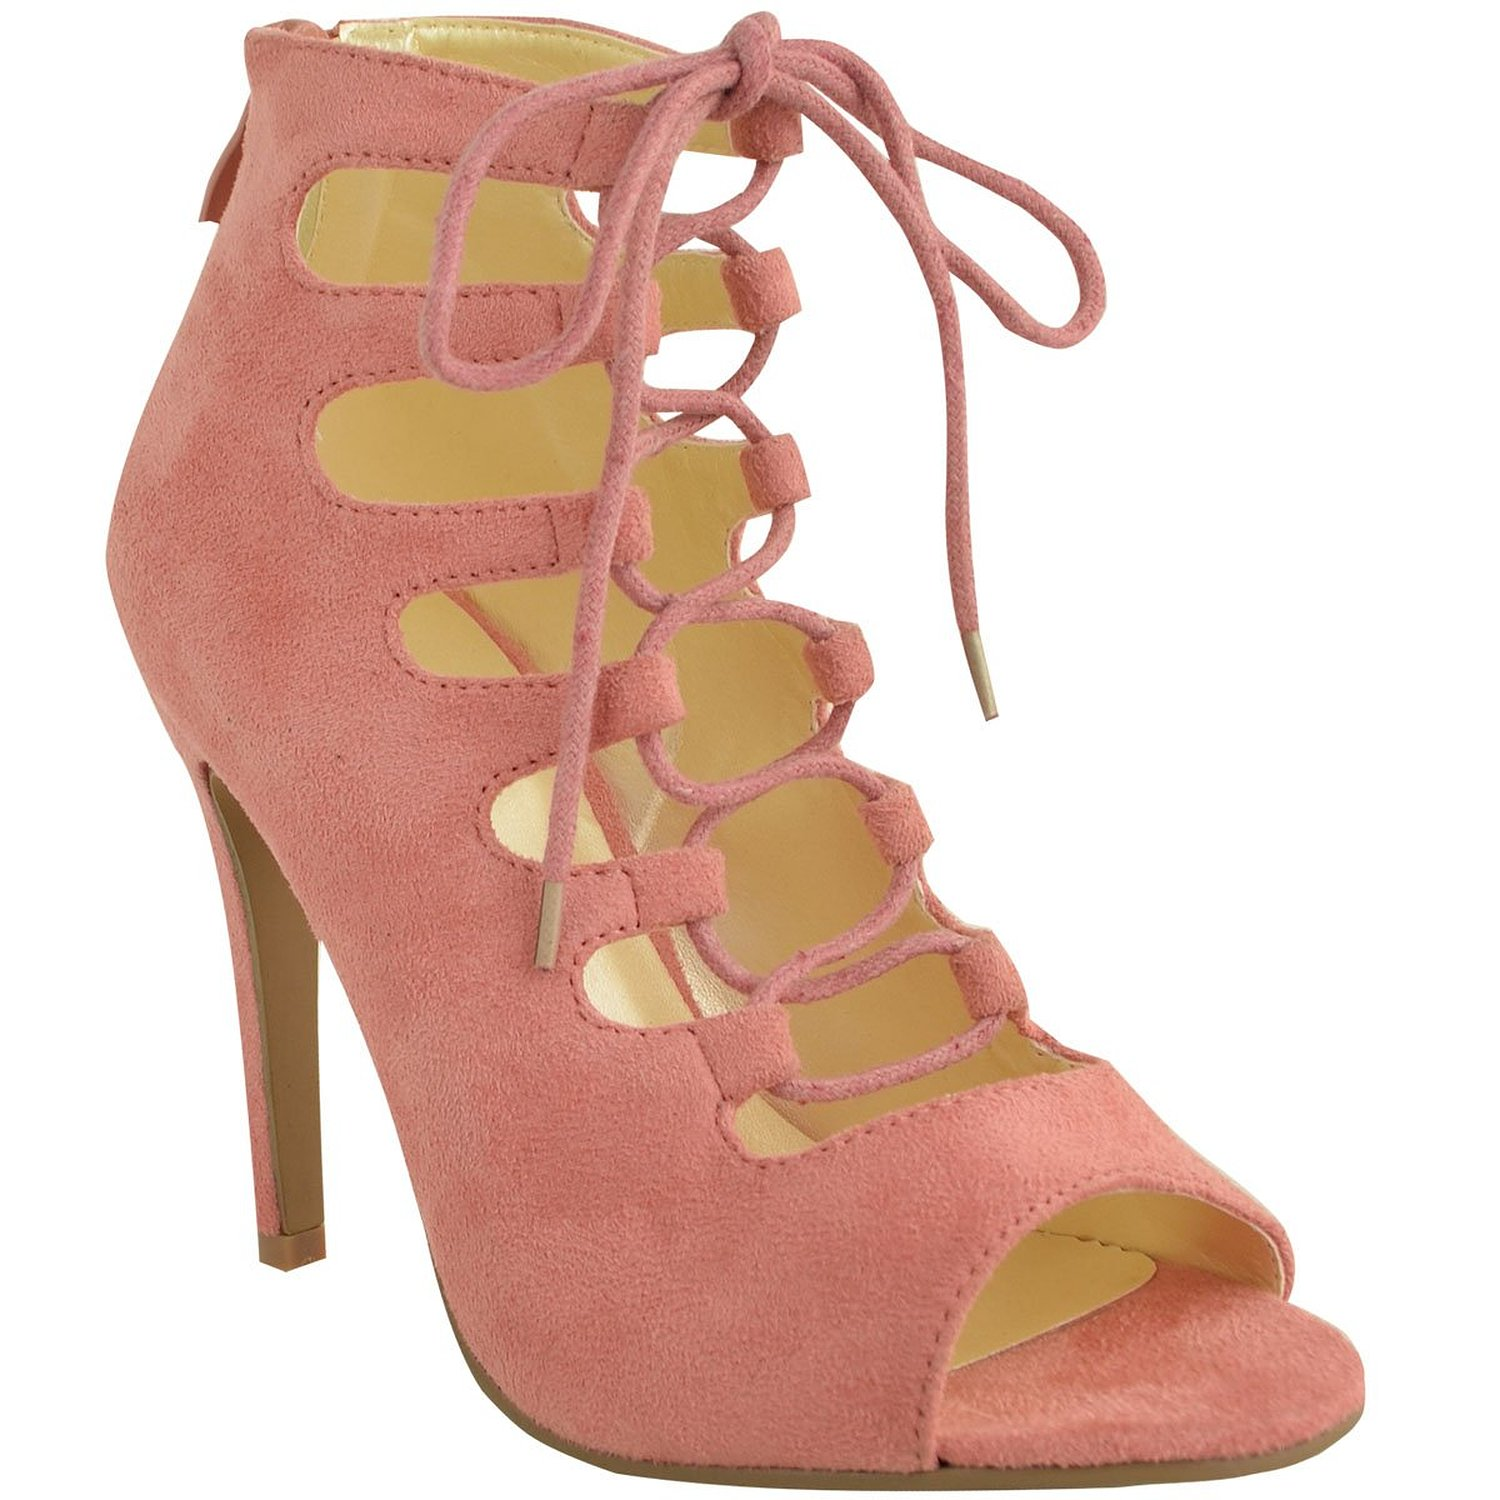 com: Fashion Thirsty Womens High Heels Stilettos Lace Up Gladiator ...